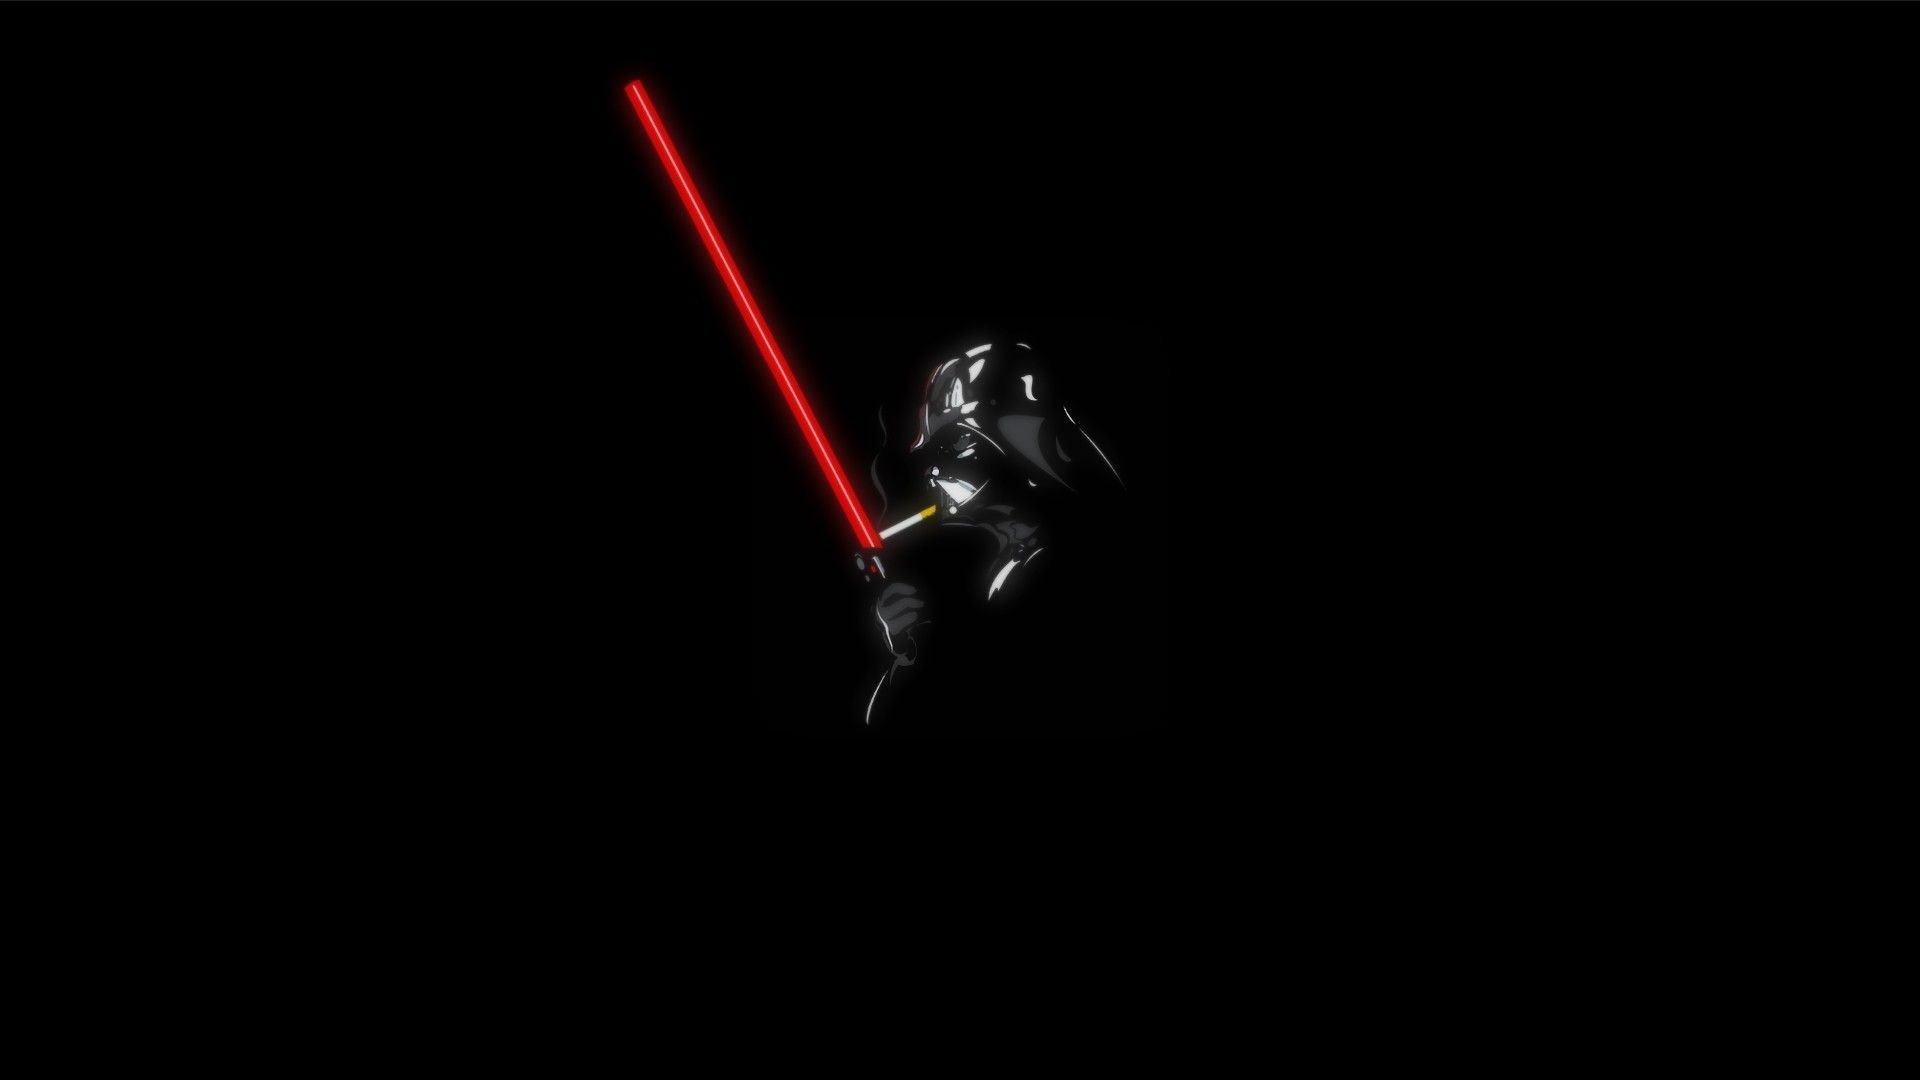 Star Wars Black Wallpapers On Wallpaperdog